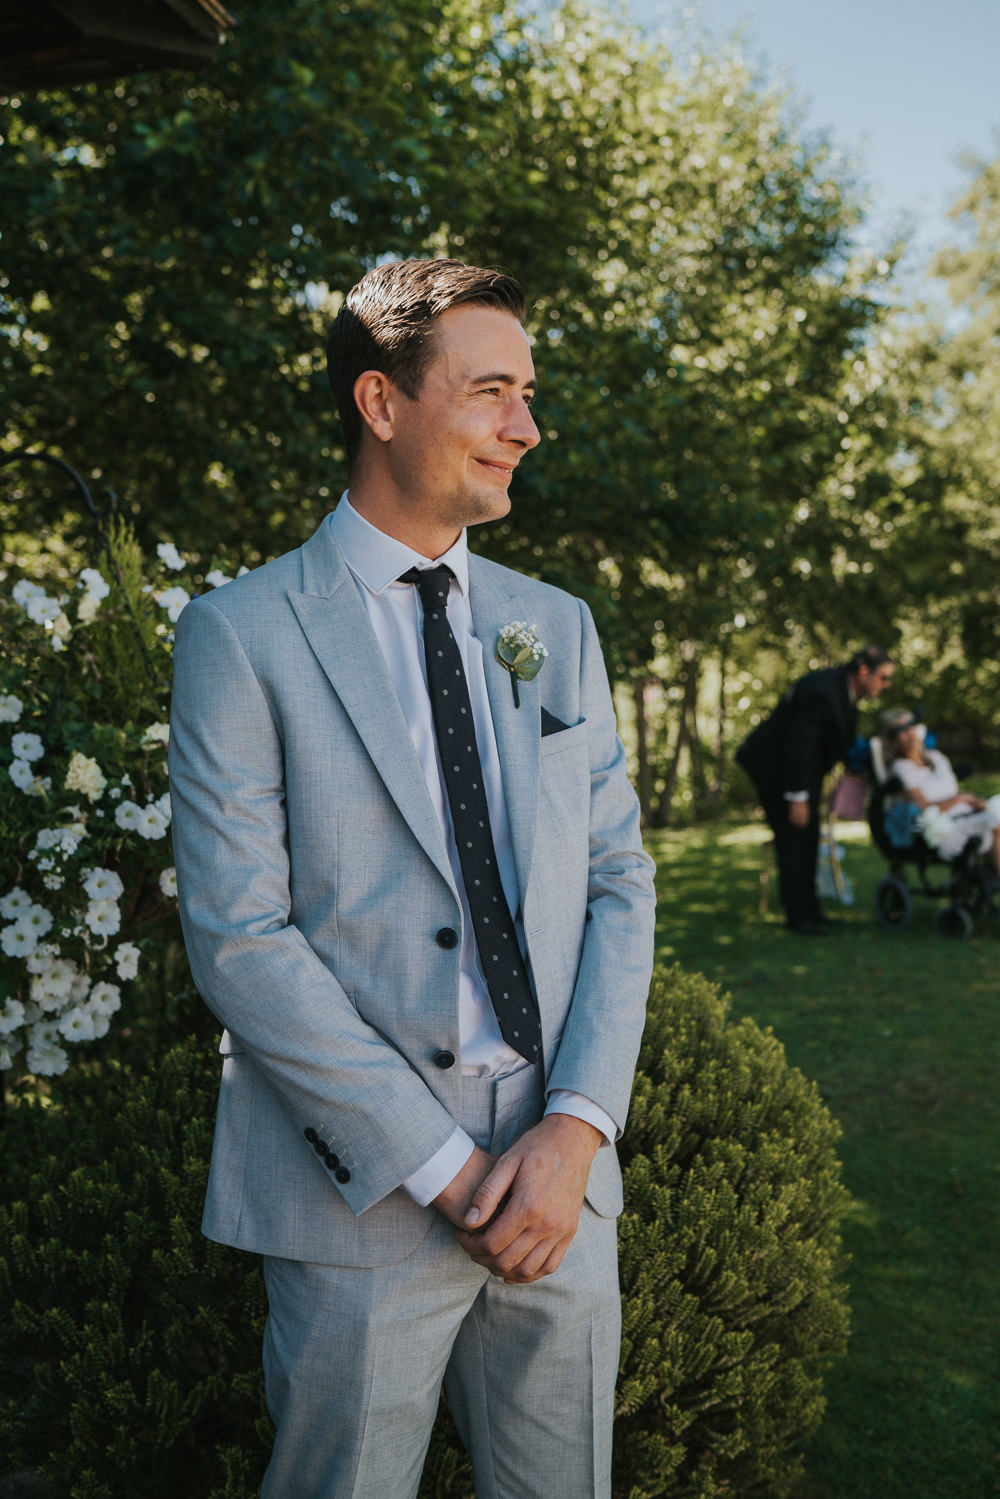 Intimate Outdoor Natural Relaxed Laid Back Summer Gazebo Ceremony Aisle Groom Grey Suit | Prested Hall Wedding Grace Elizabeth Photography